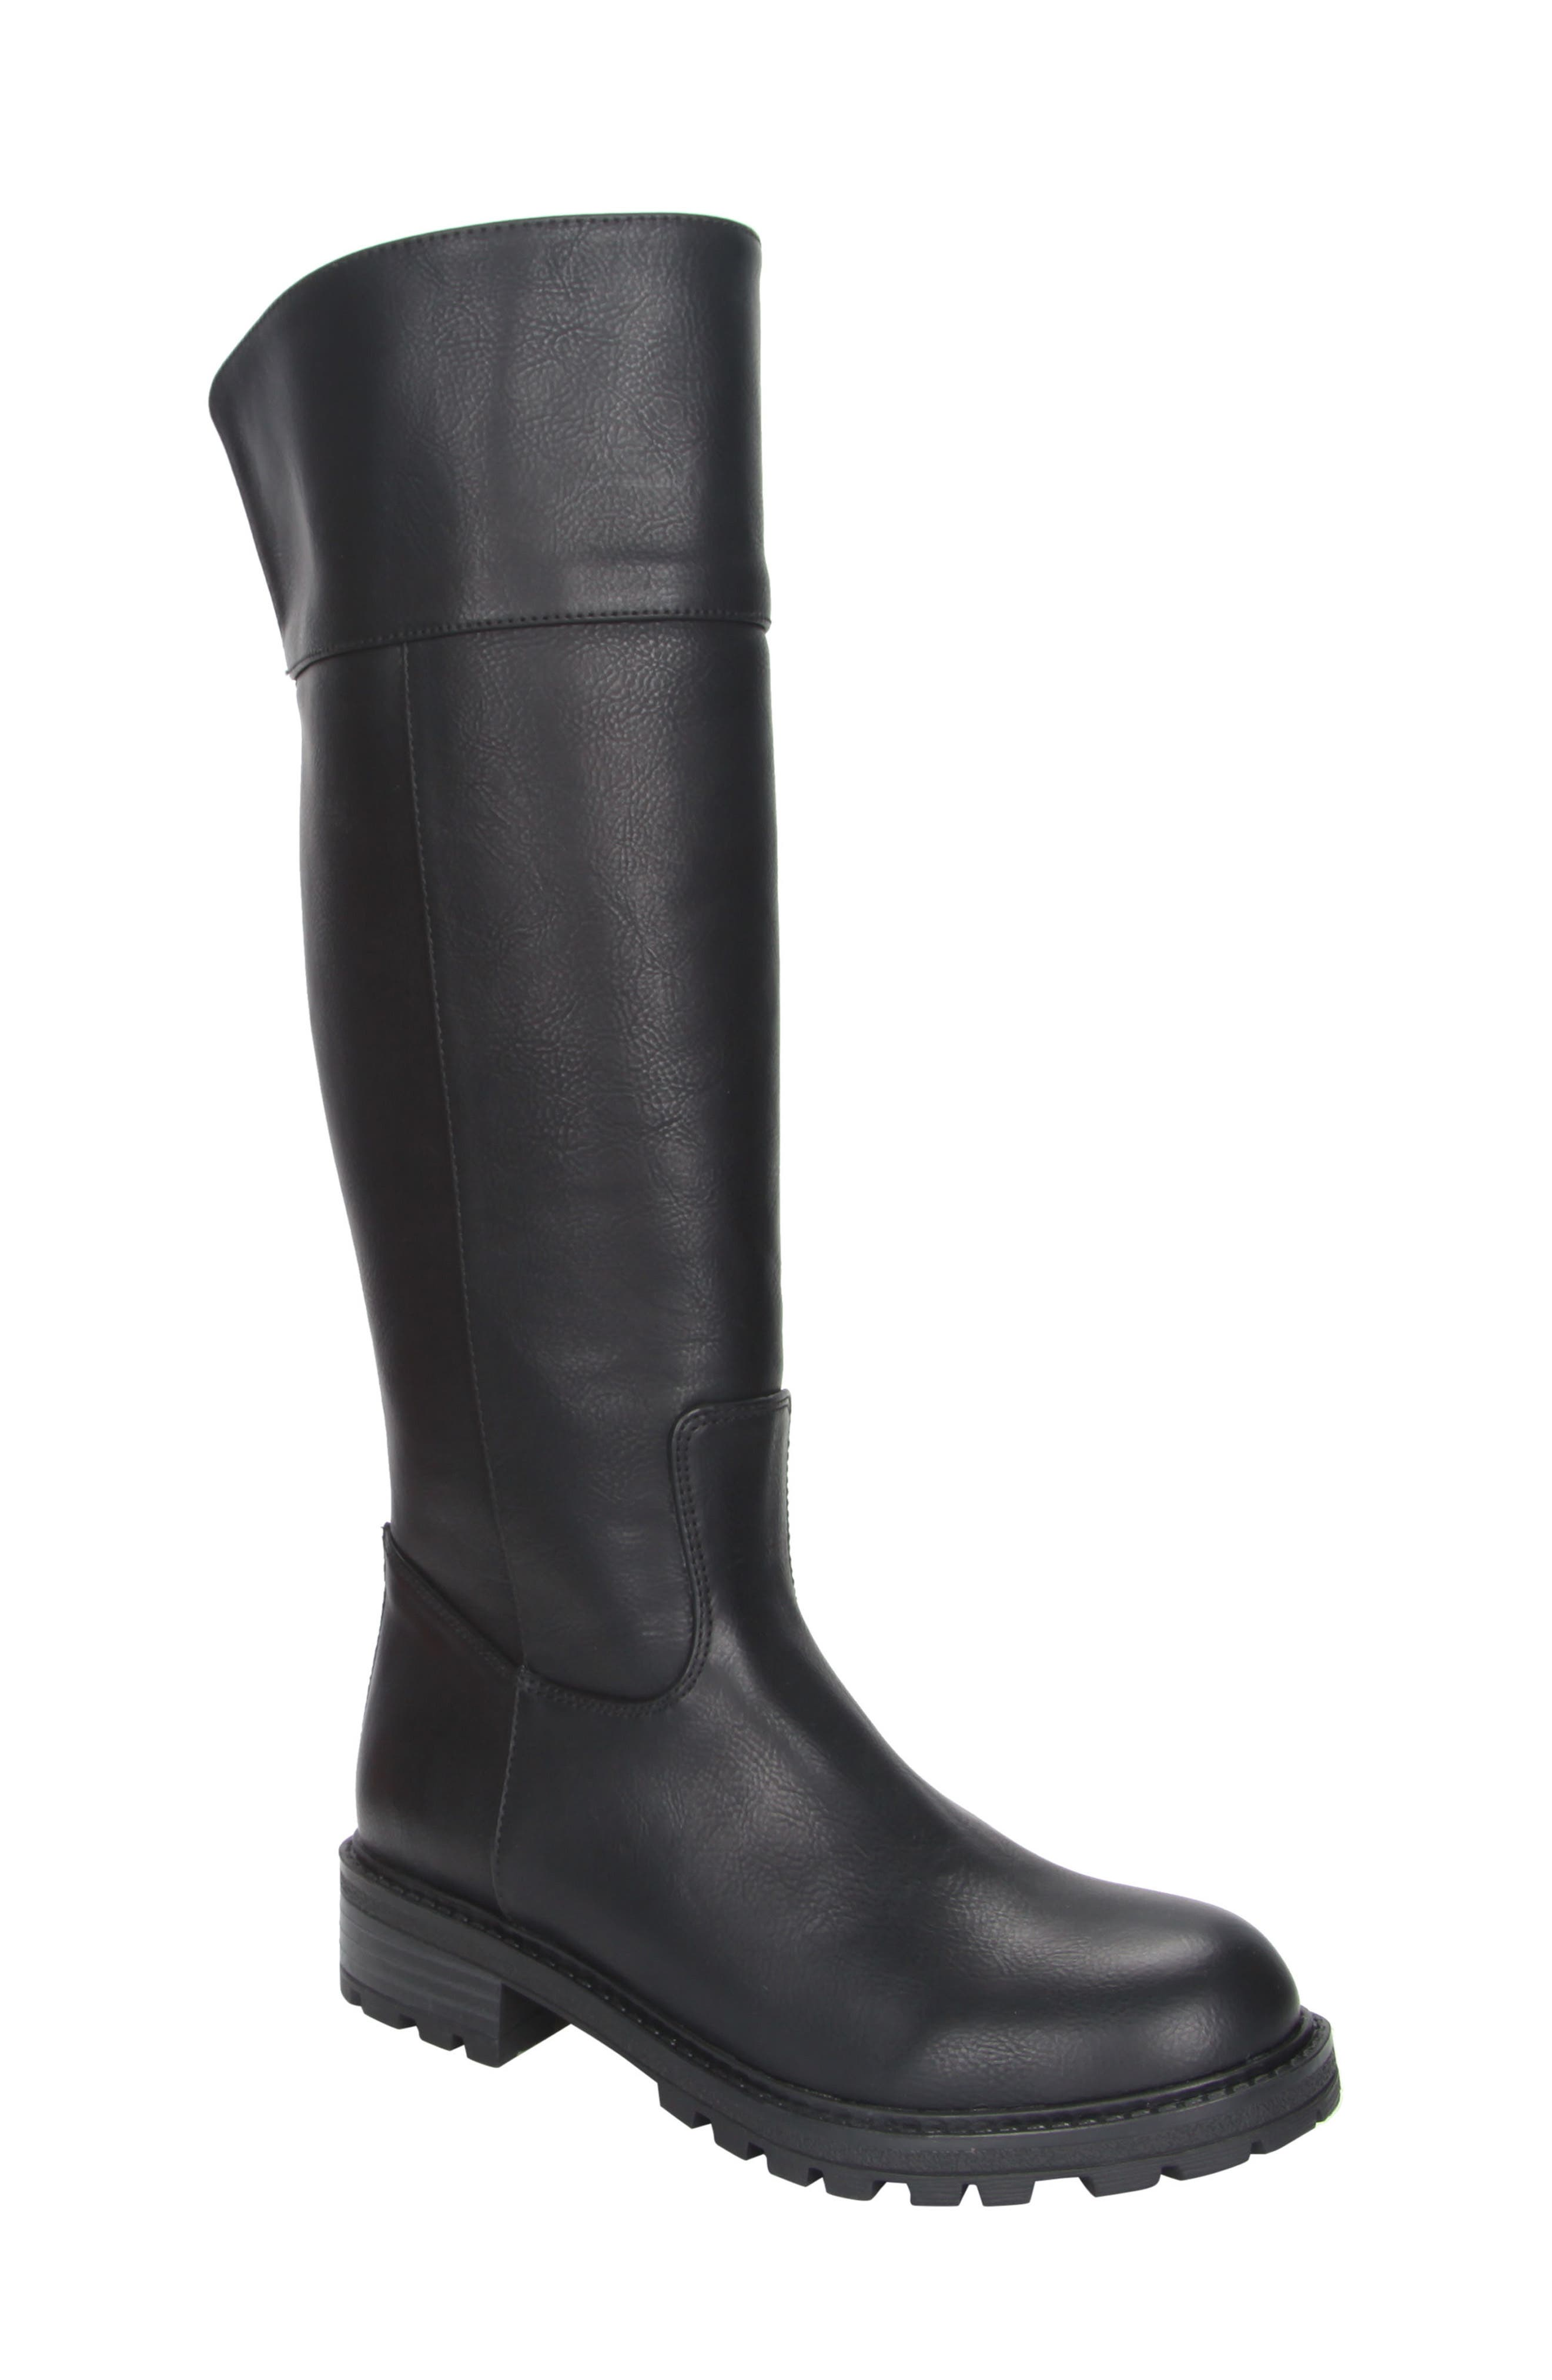 Nixie Tall Lugged Boot,                         Main,                         color, Black Tumbled Leather